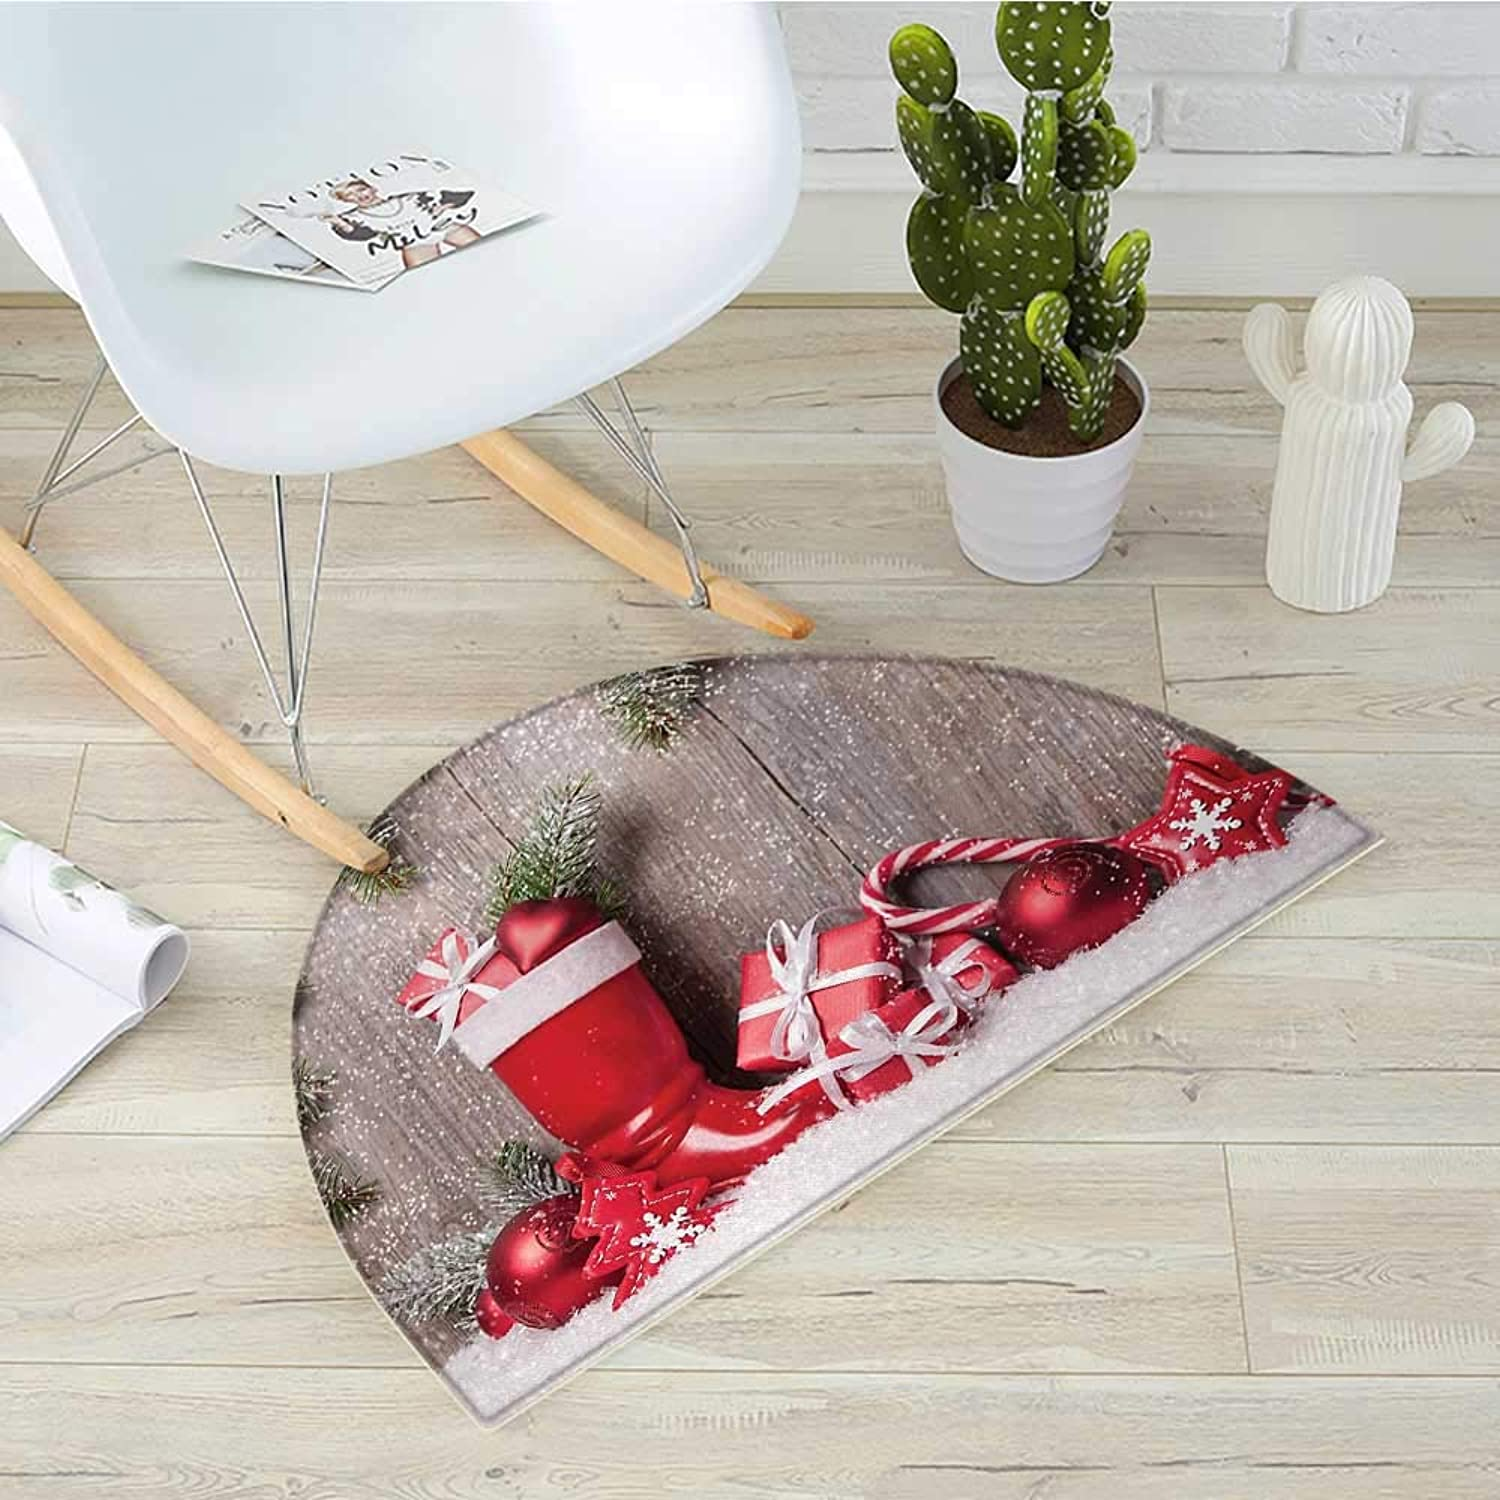 Christmas Semicircular CushionXmas Background with Gift Boxes on Wooden Board Countryside Celebration Image Entry Door Mat H 43.3  xD 64.9  Brown Red